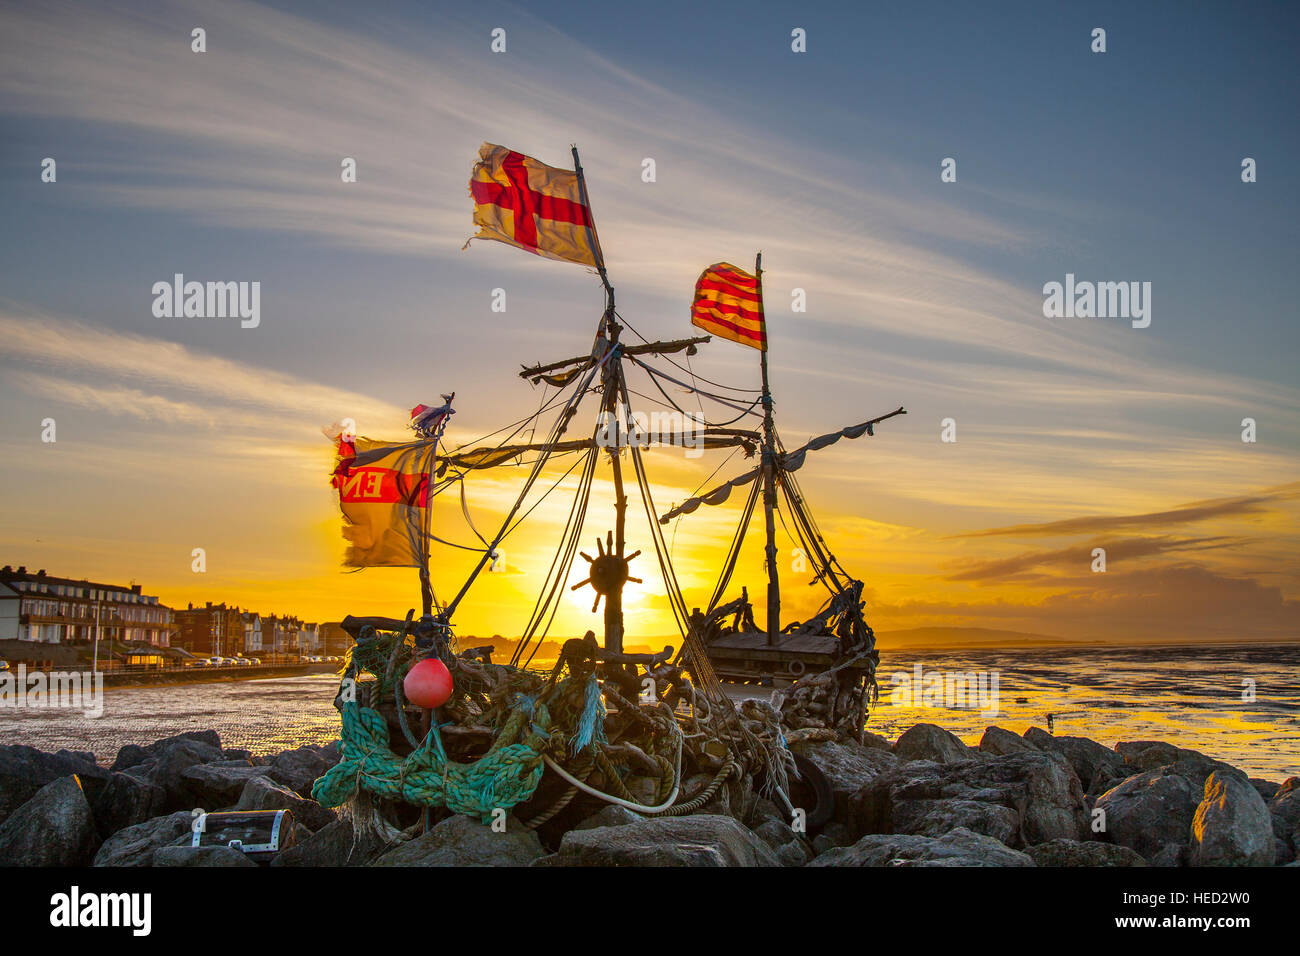 Hoylake, The Wirral, UK. UK Weather. Strong winds on the west coast as the flags of the driftwood Pirate ship signal Stock Photo